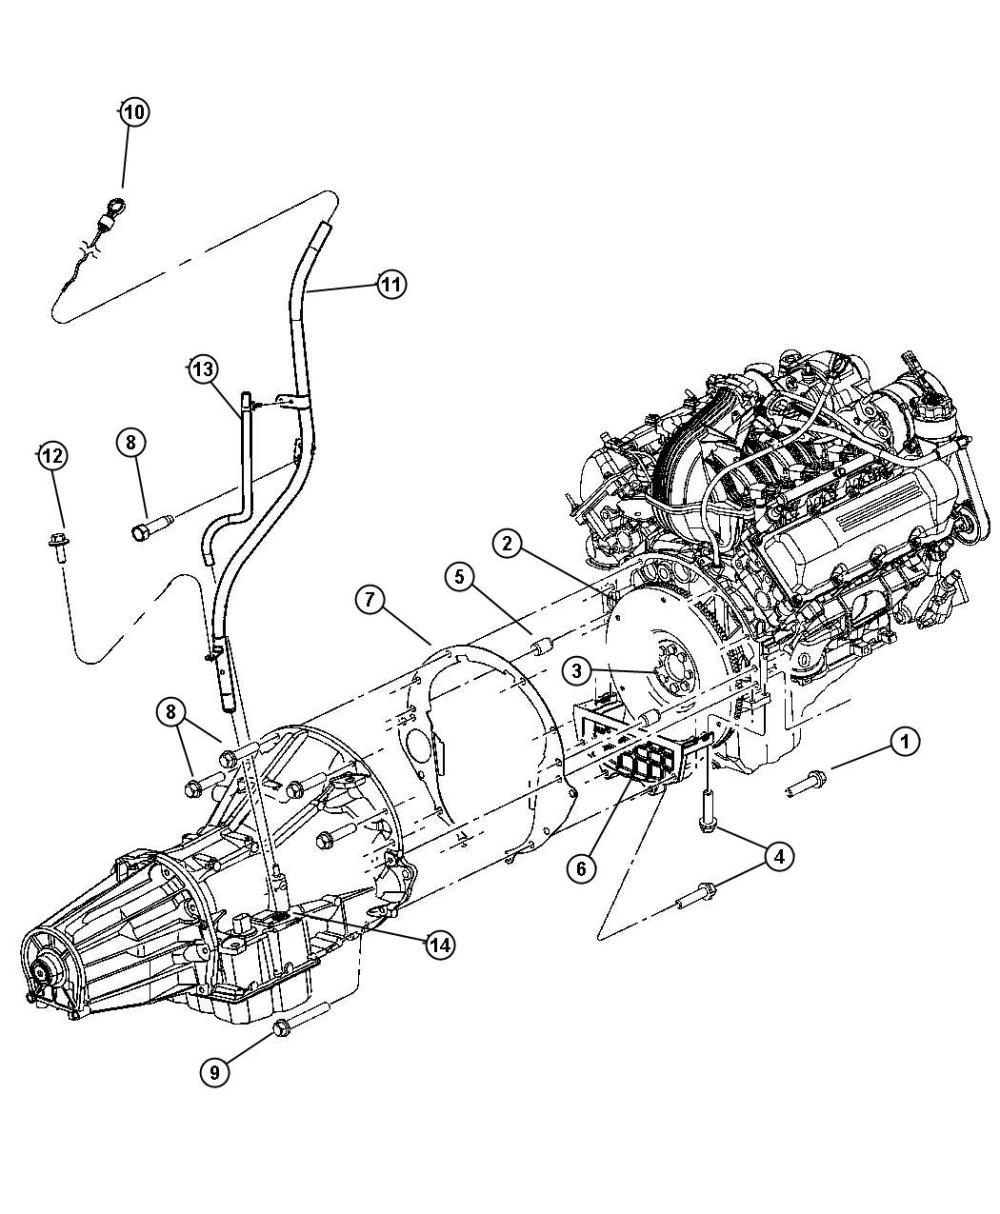 medium resolution of 2001 dodge dakota transmission schematic wiring diagrams konsult 2001 dodge dakota transmission schematic